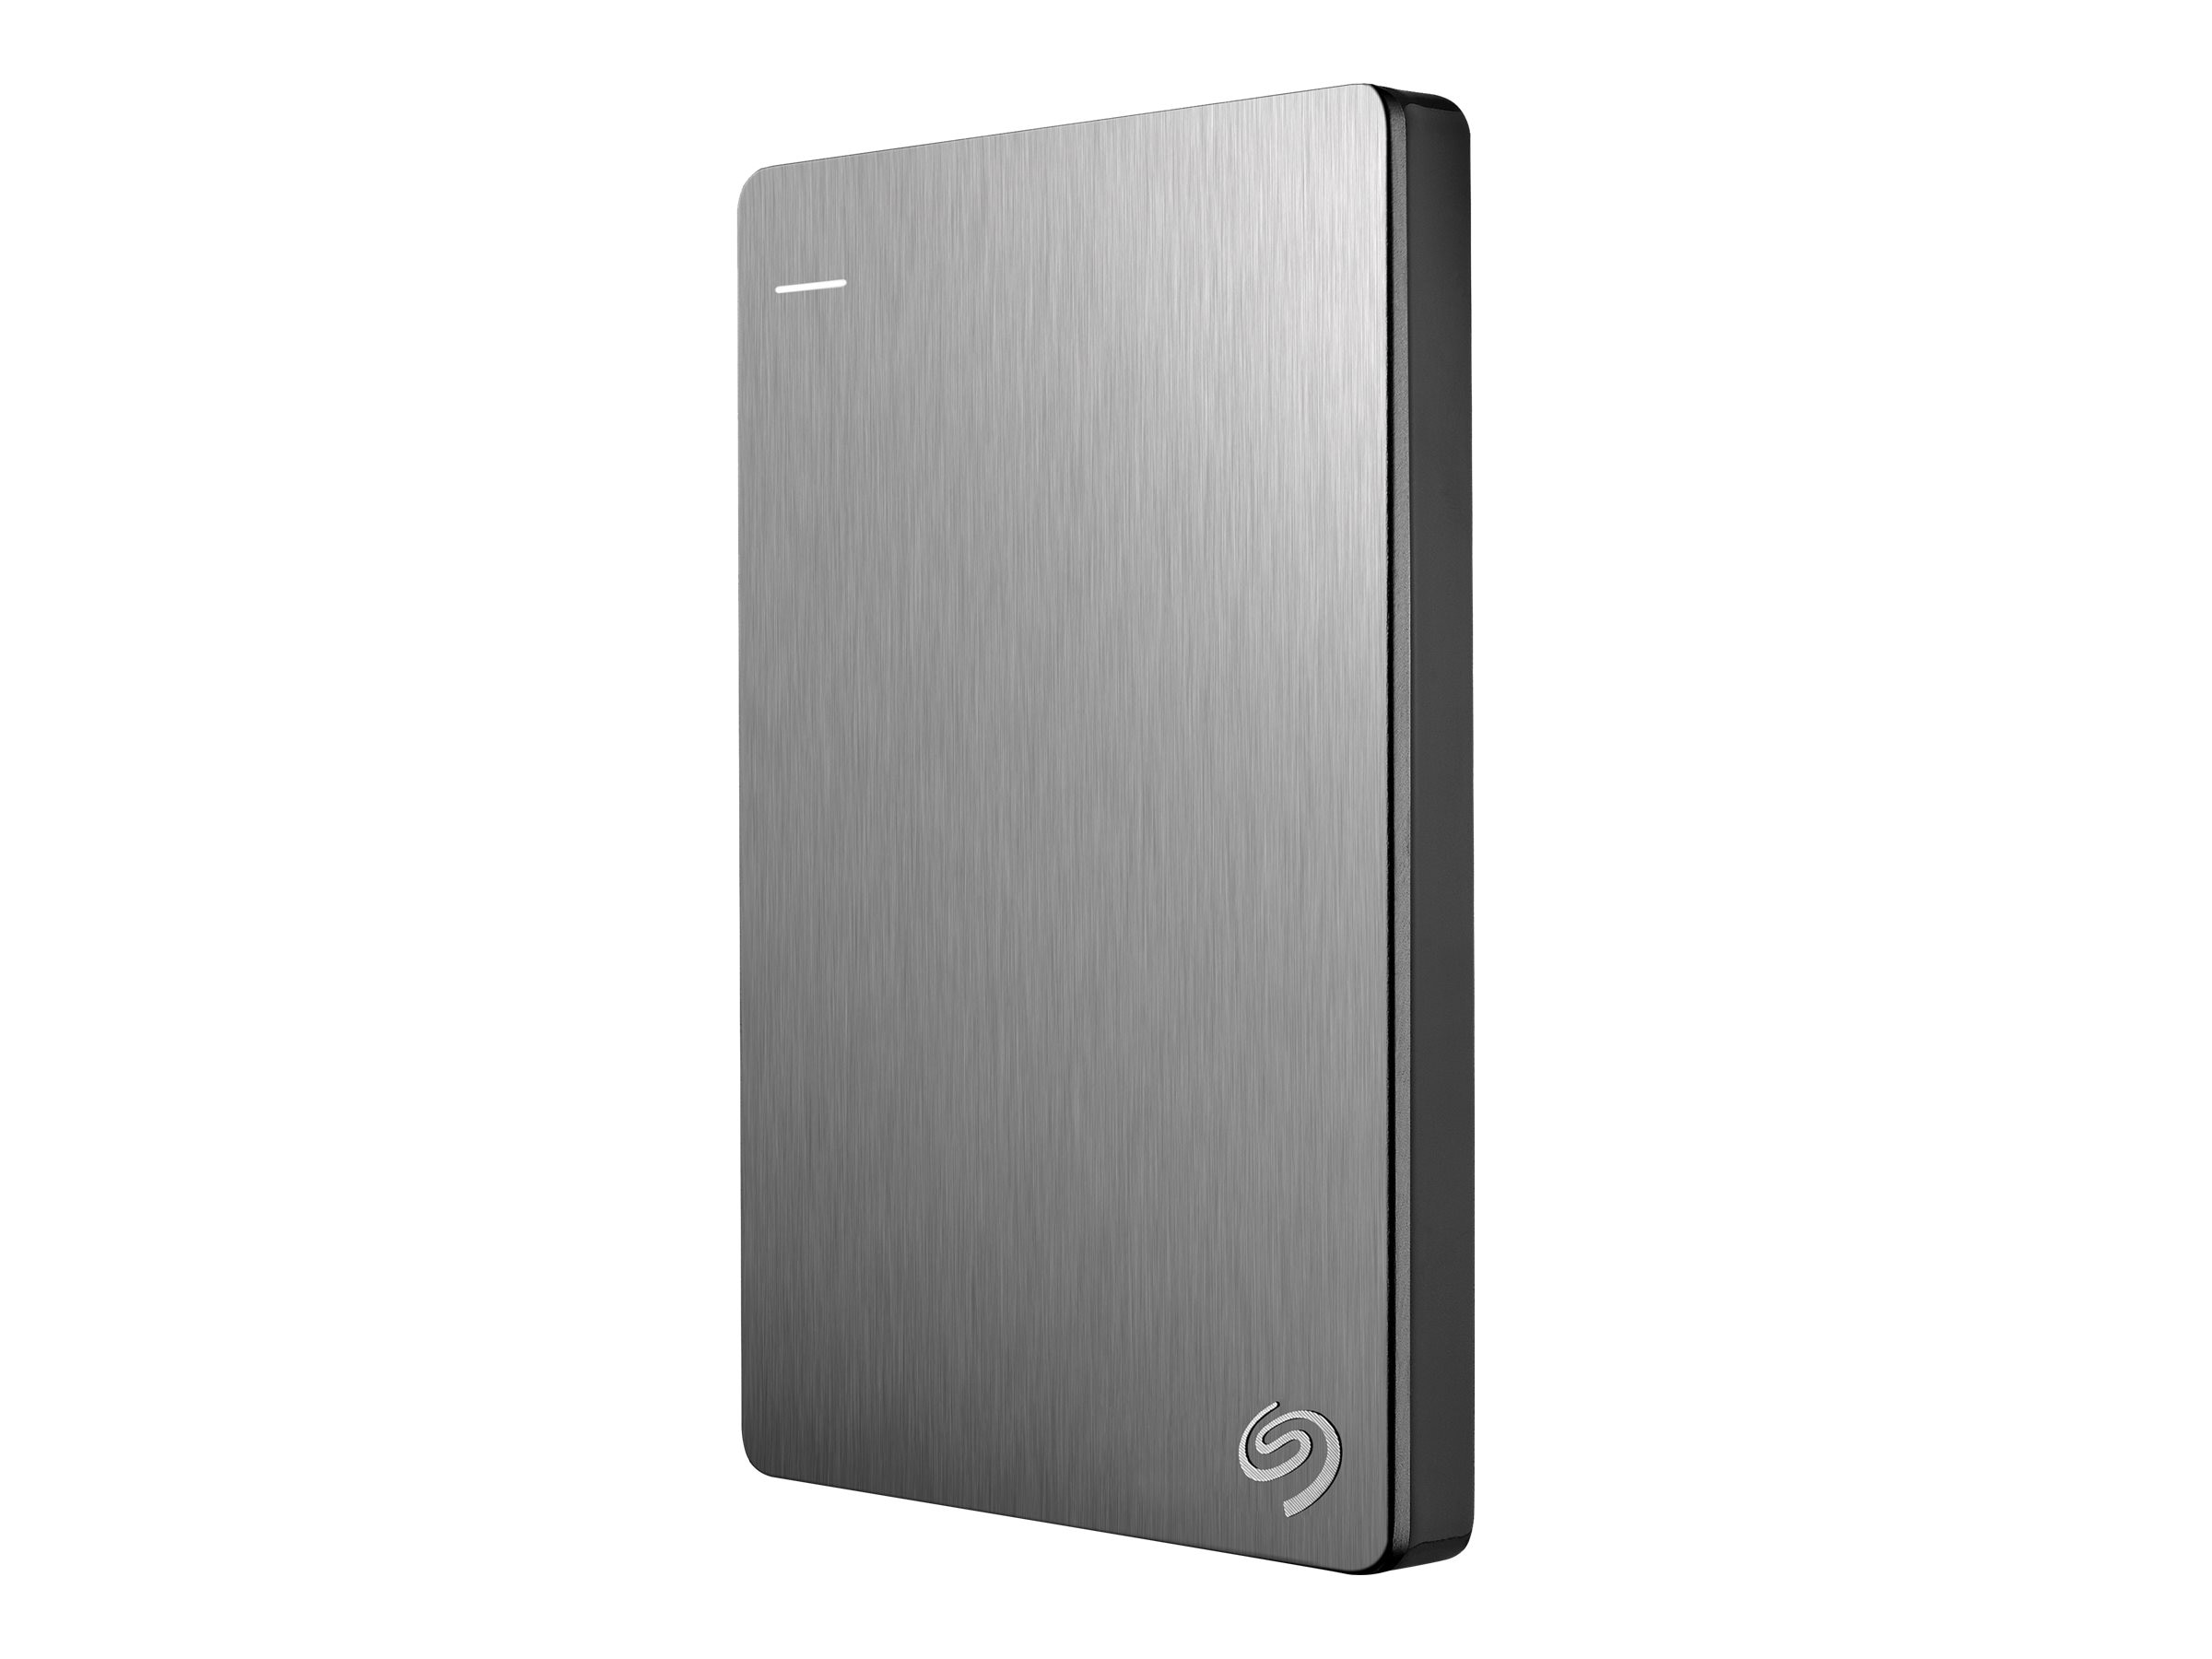 Seagate 1TB Backup Plus USB 3.0 Slim Portable Hard Drive - Silver, STDR1000101, 16573920, Hard Drives - External